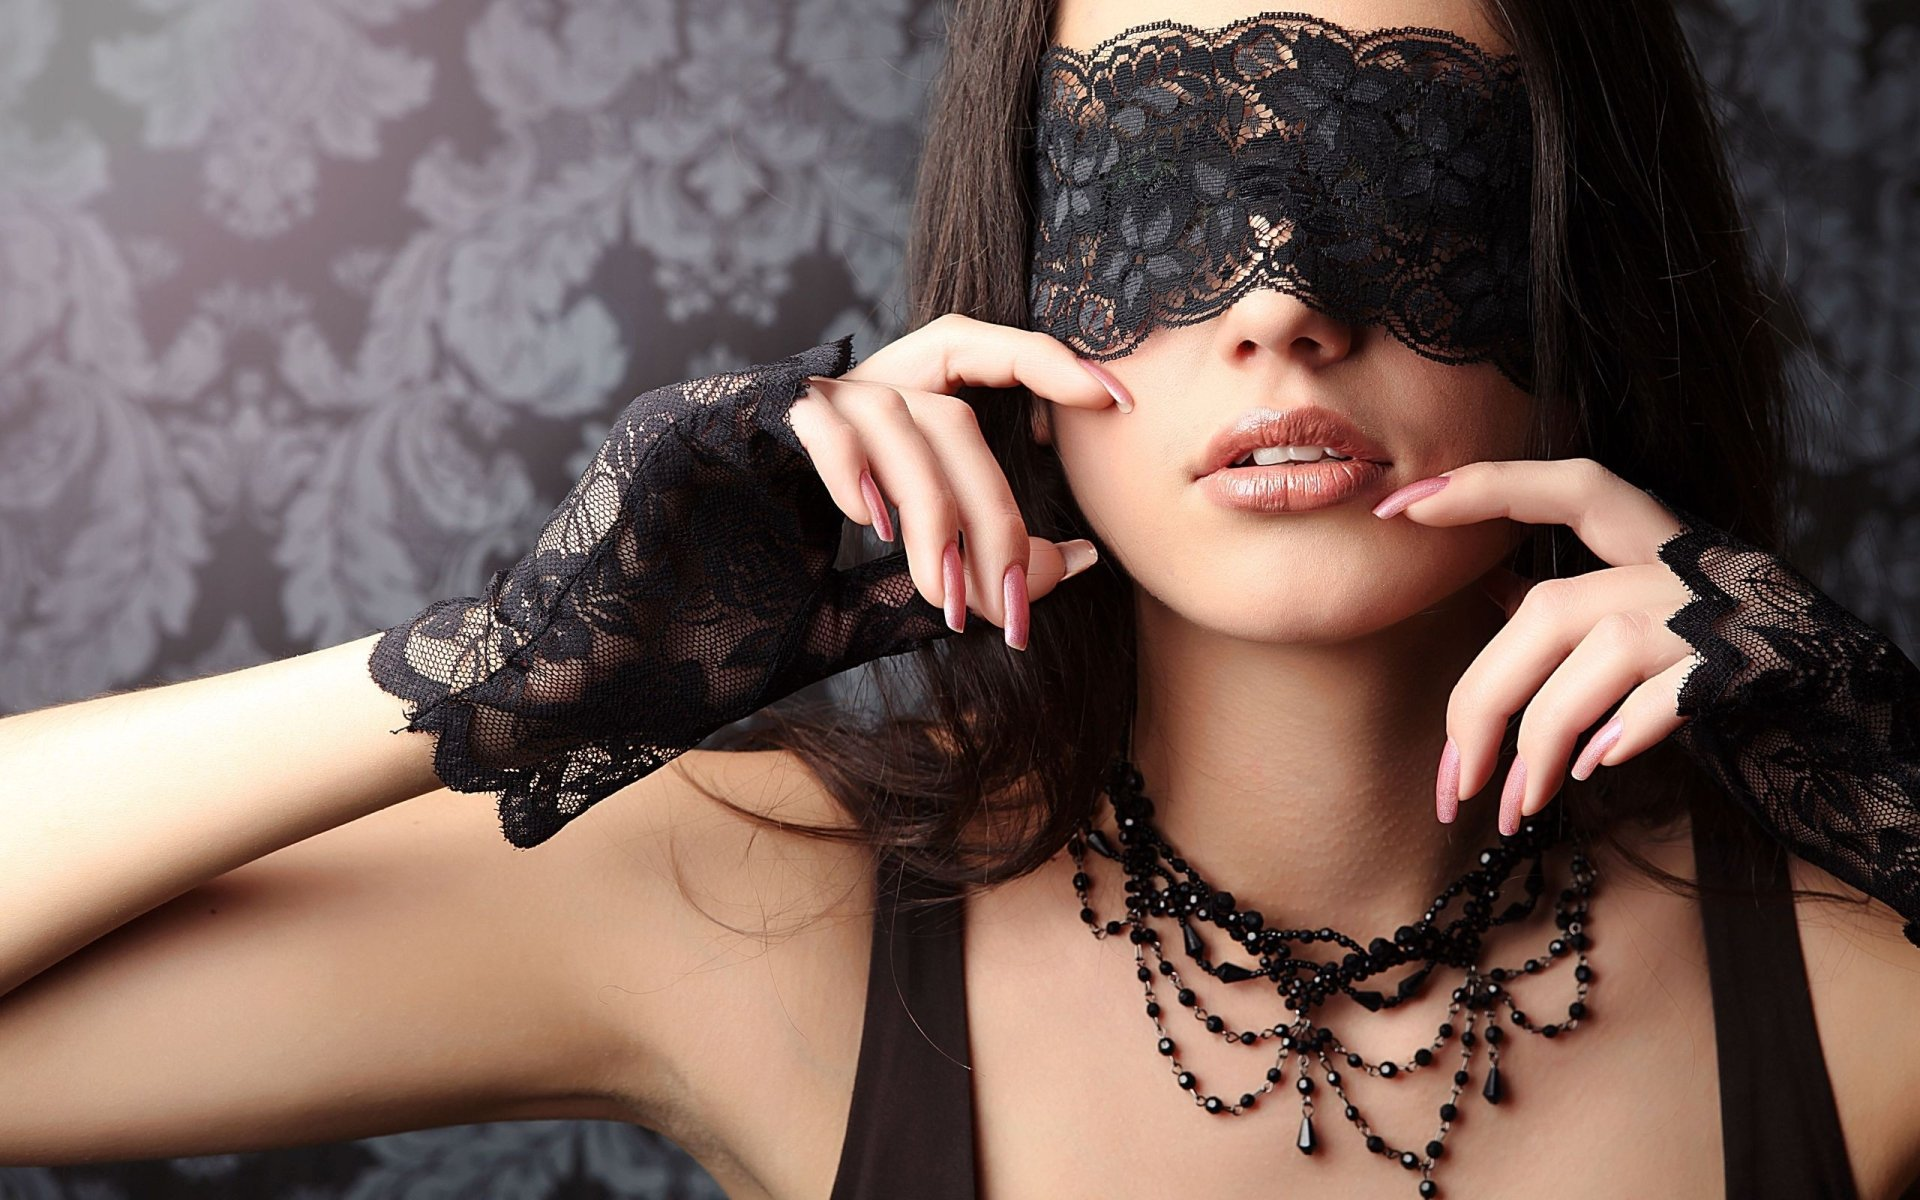 Women - Gothic  Woman Sensual Wallpaper